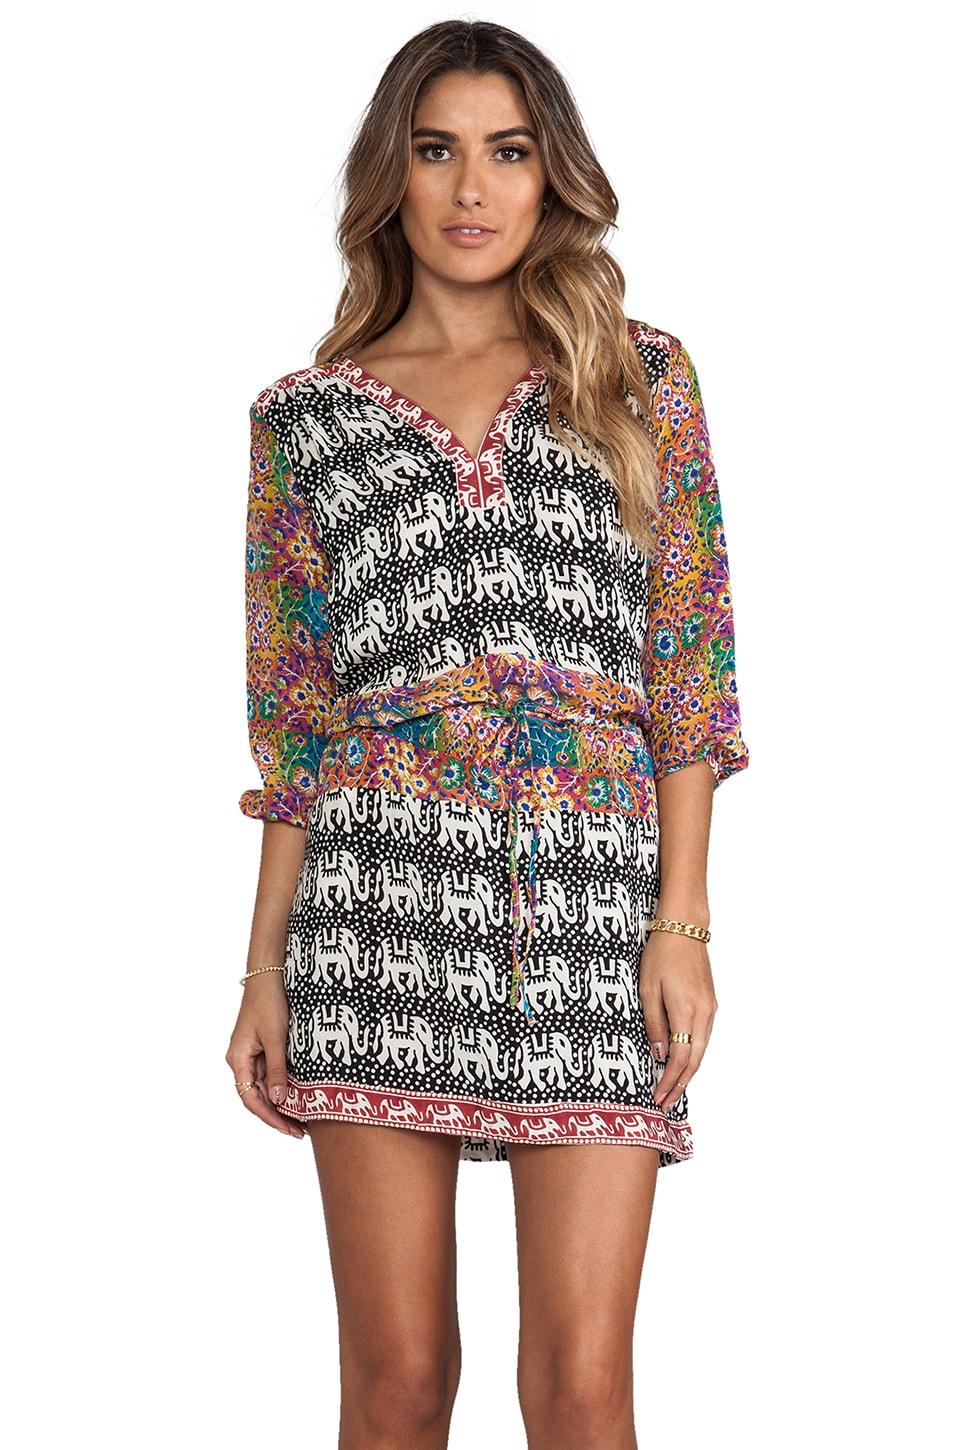 Tolani Noelle Dress in Elephants